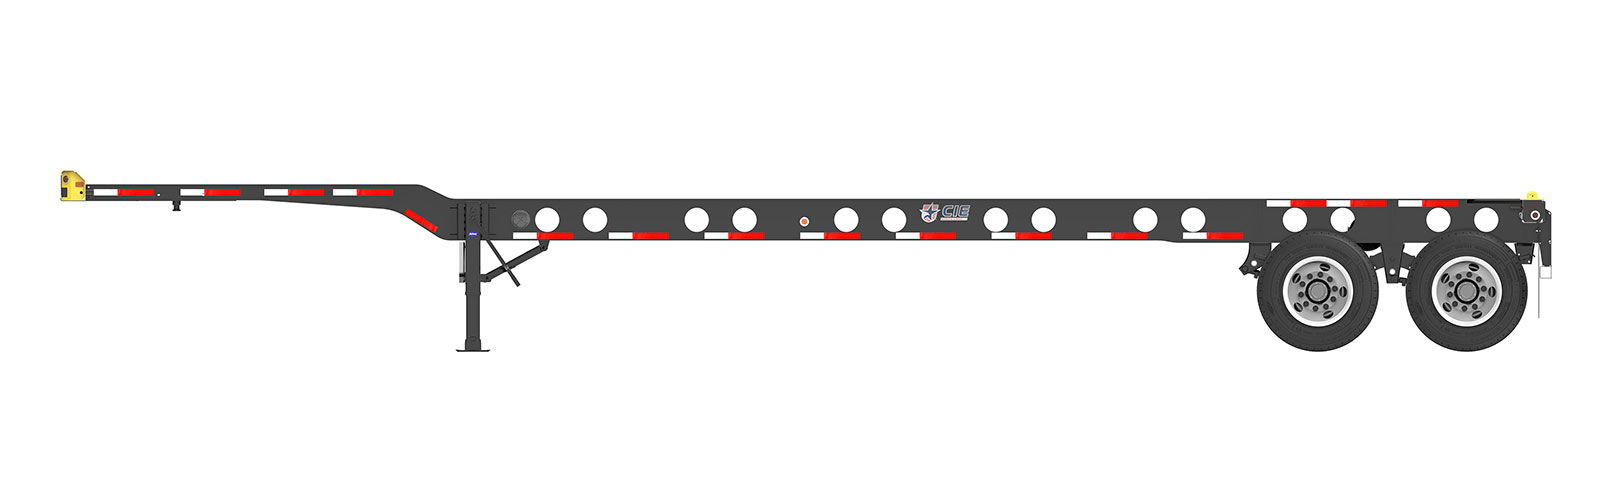 40' Gooseneck Tandem Lightweight Container Chassis Orthographic Side View Final